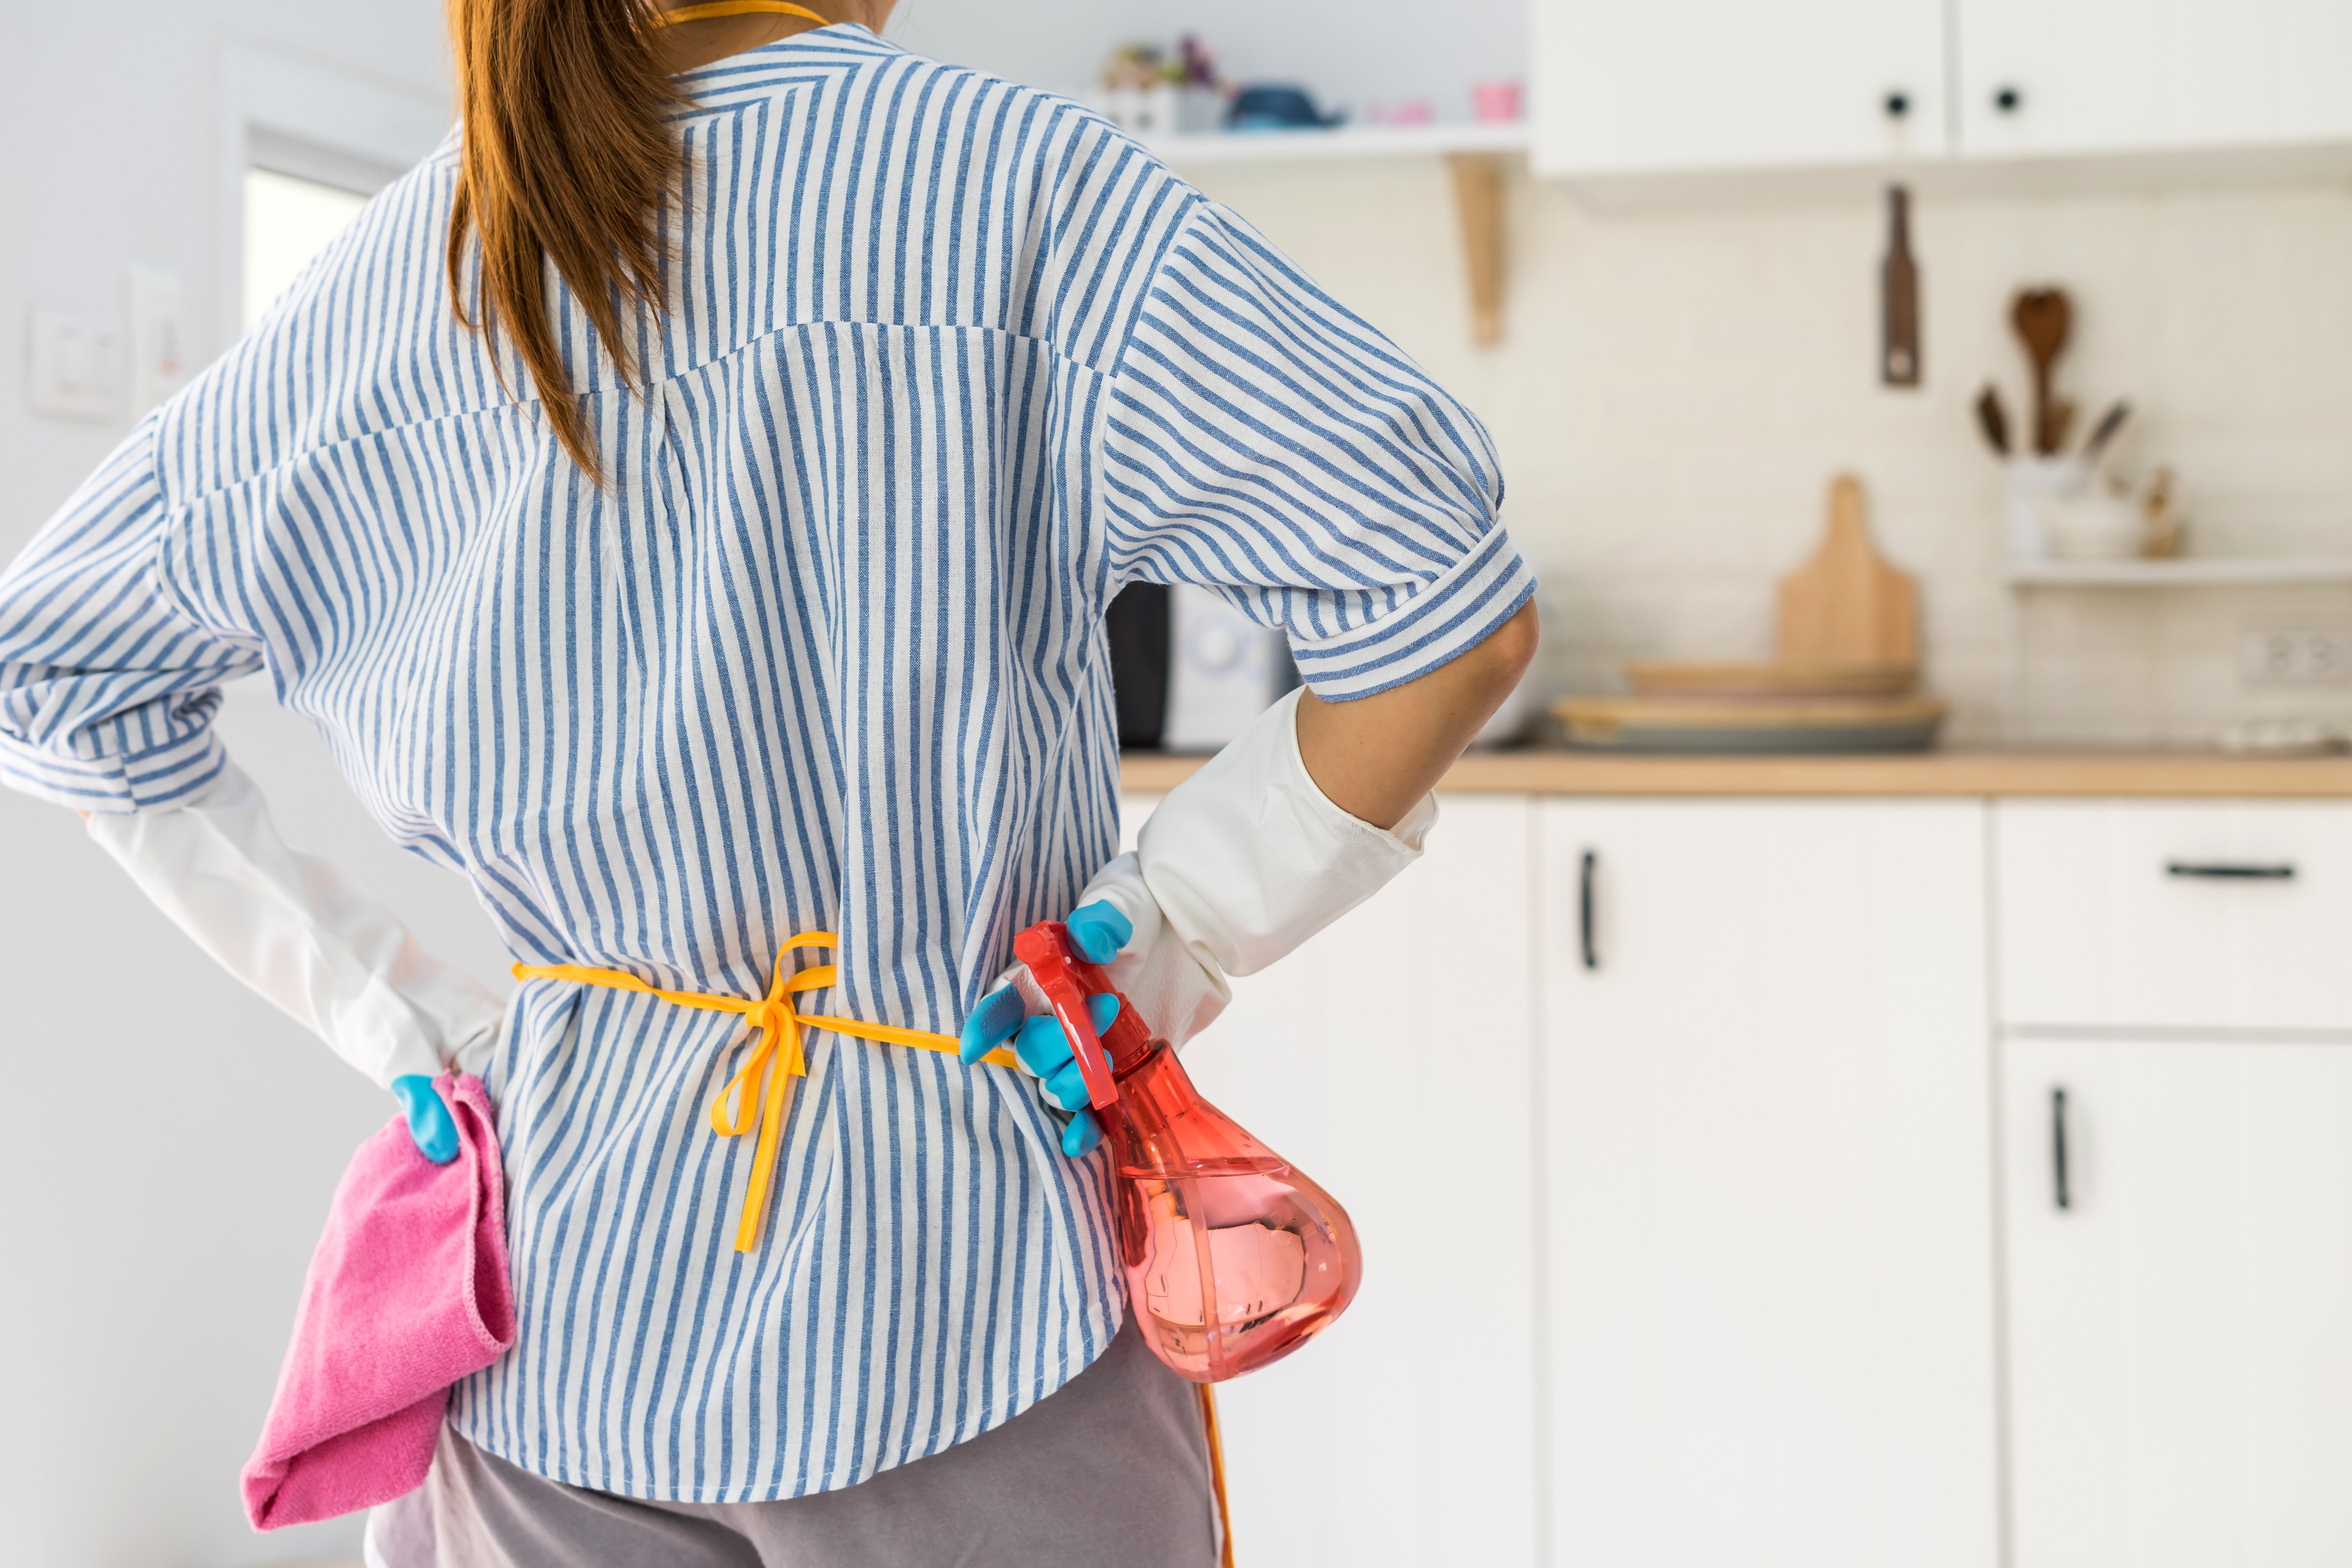 Young woman stands in her kitchen with cleaning supplies | Photo: Shutterstock